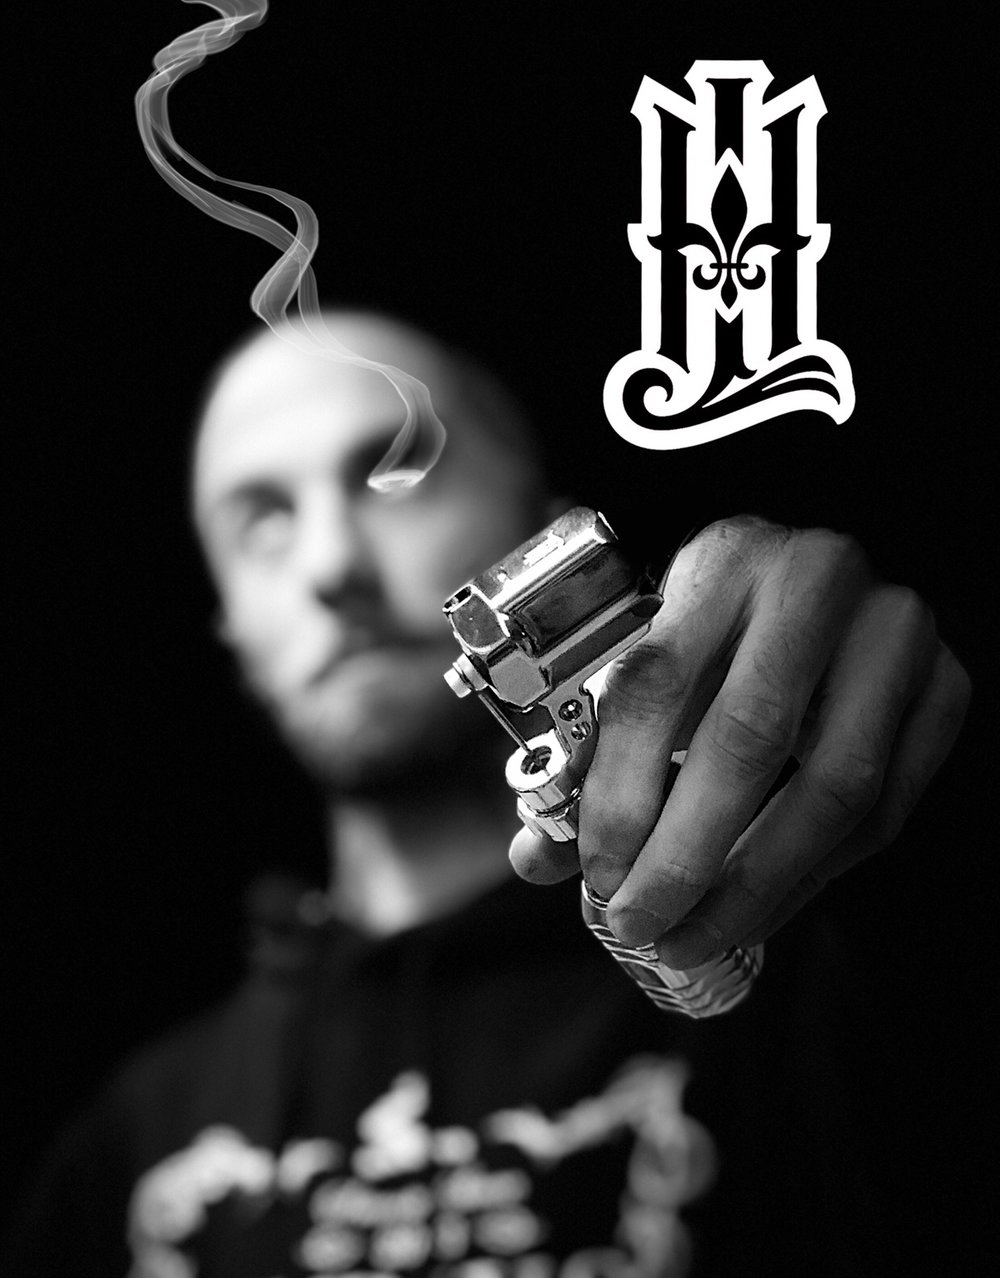 Mac Brandon - Mac is a southern CA based tattoo artist who can tattoo a wide range of styles specializing in fine line, dark art, realism and custom lettering. He has been tattooing professionally since 2015, click his photo to check out his work!